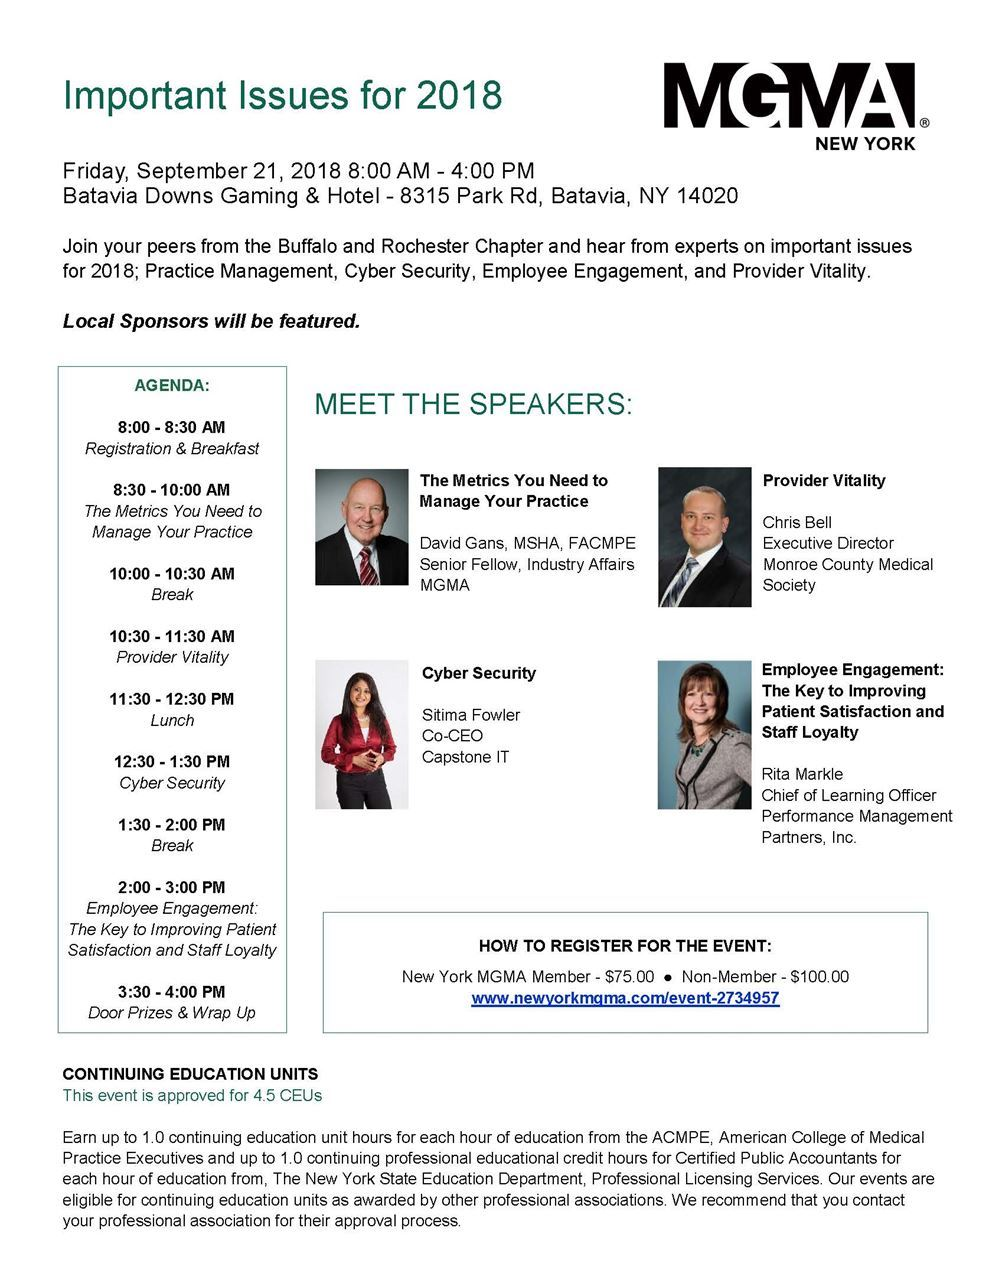 Monroe County Medical Society - Sept 21 MGMA Conference @ Batavia